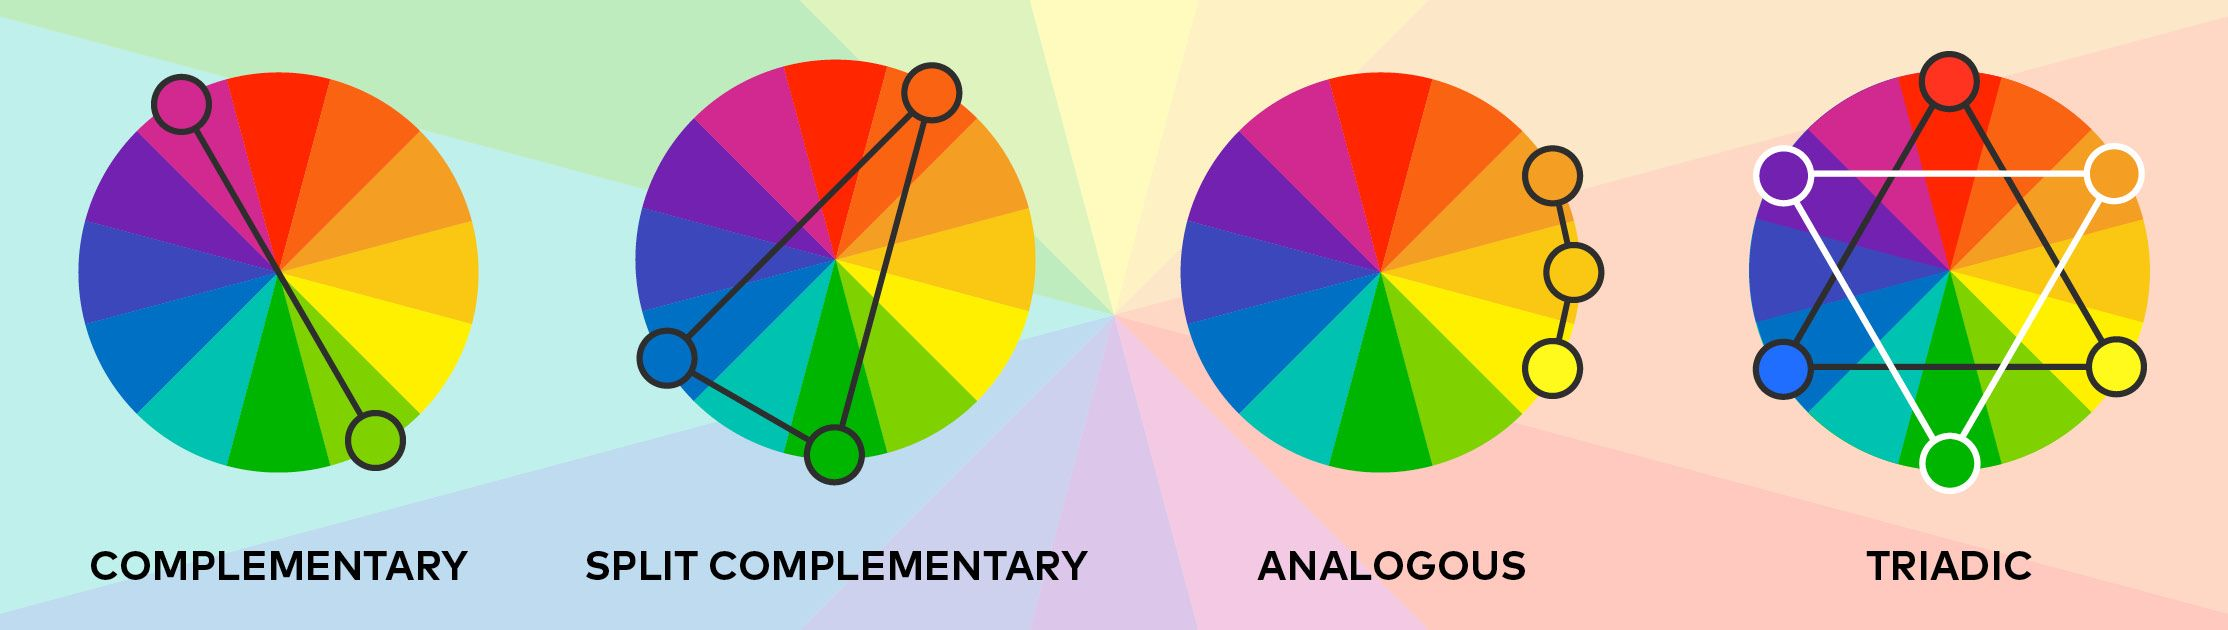 Understanding the colour wheel helps with decorating